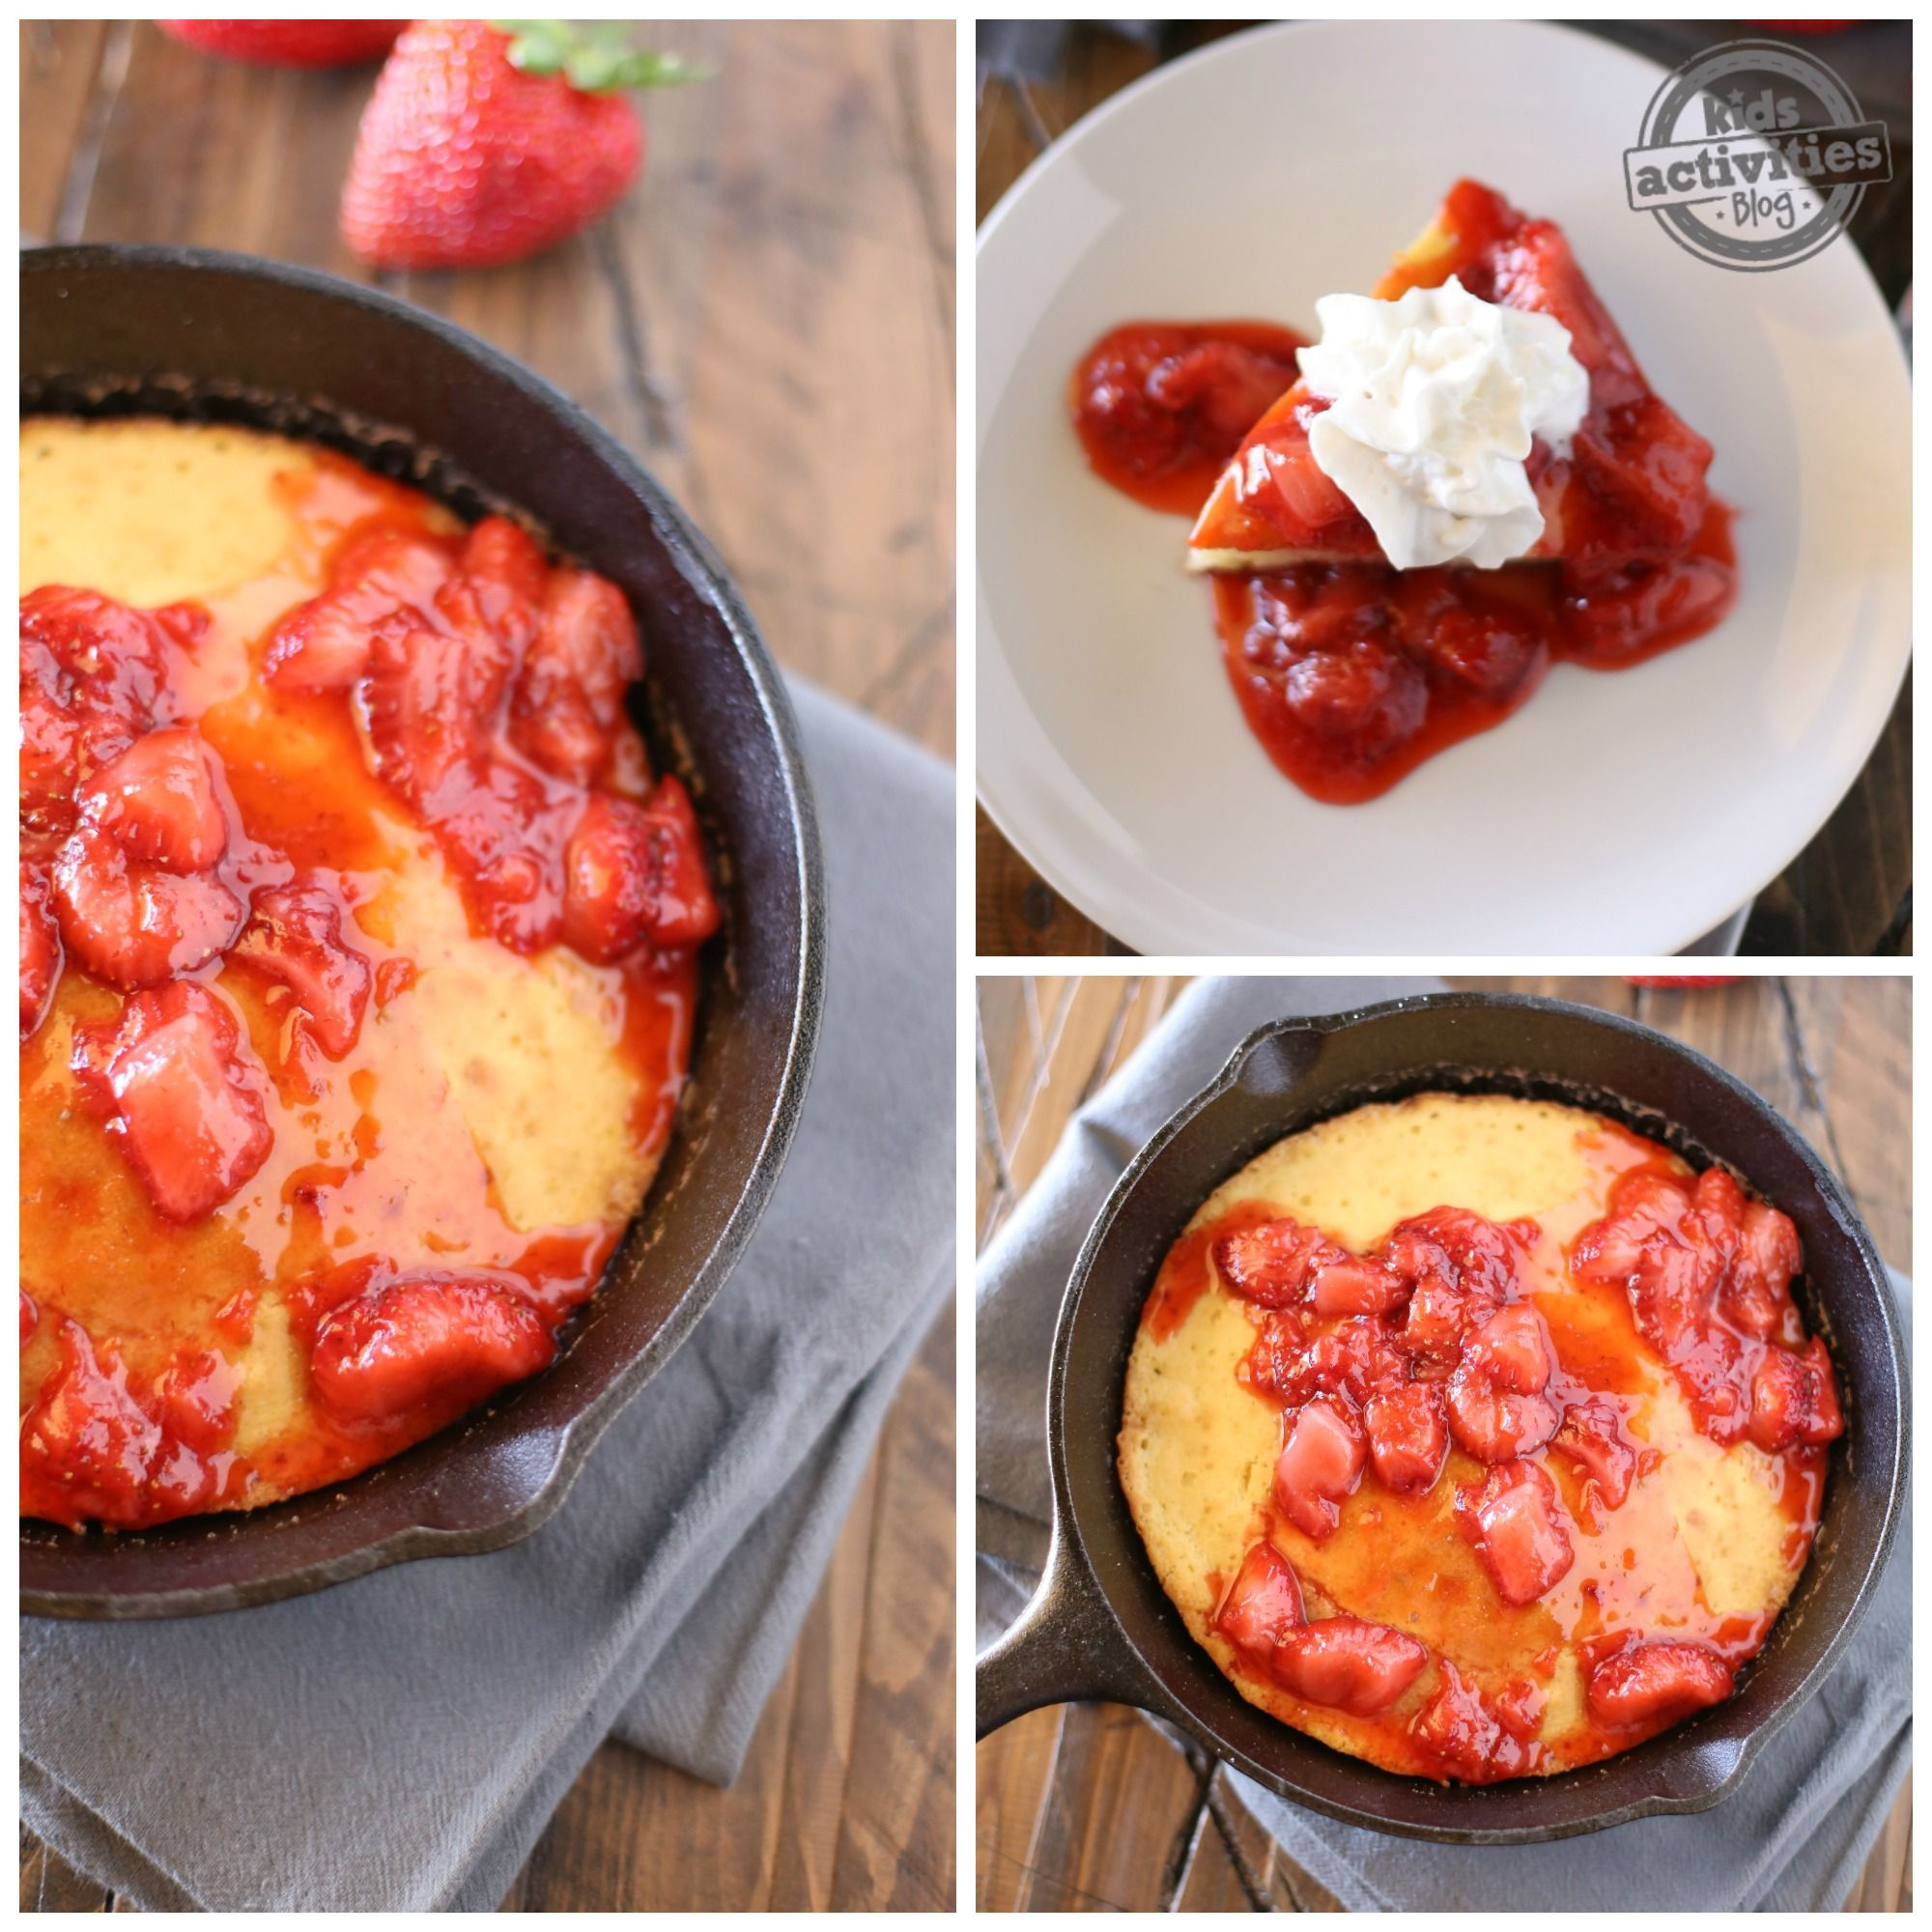 Delicious Skillet Pancake With Strawberry Syrup In